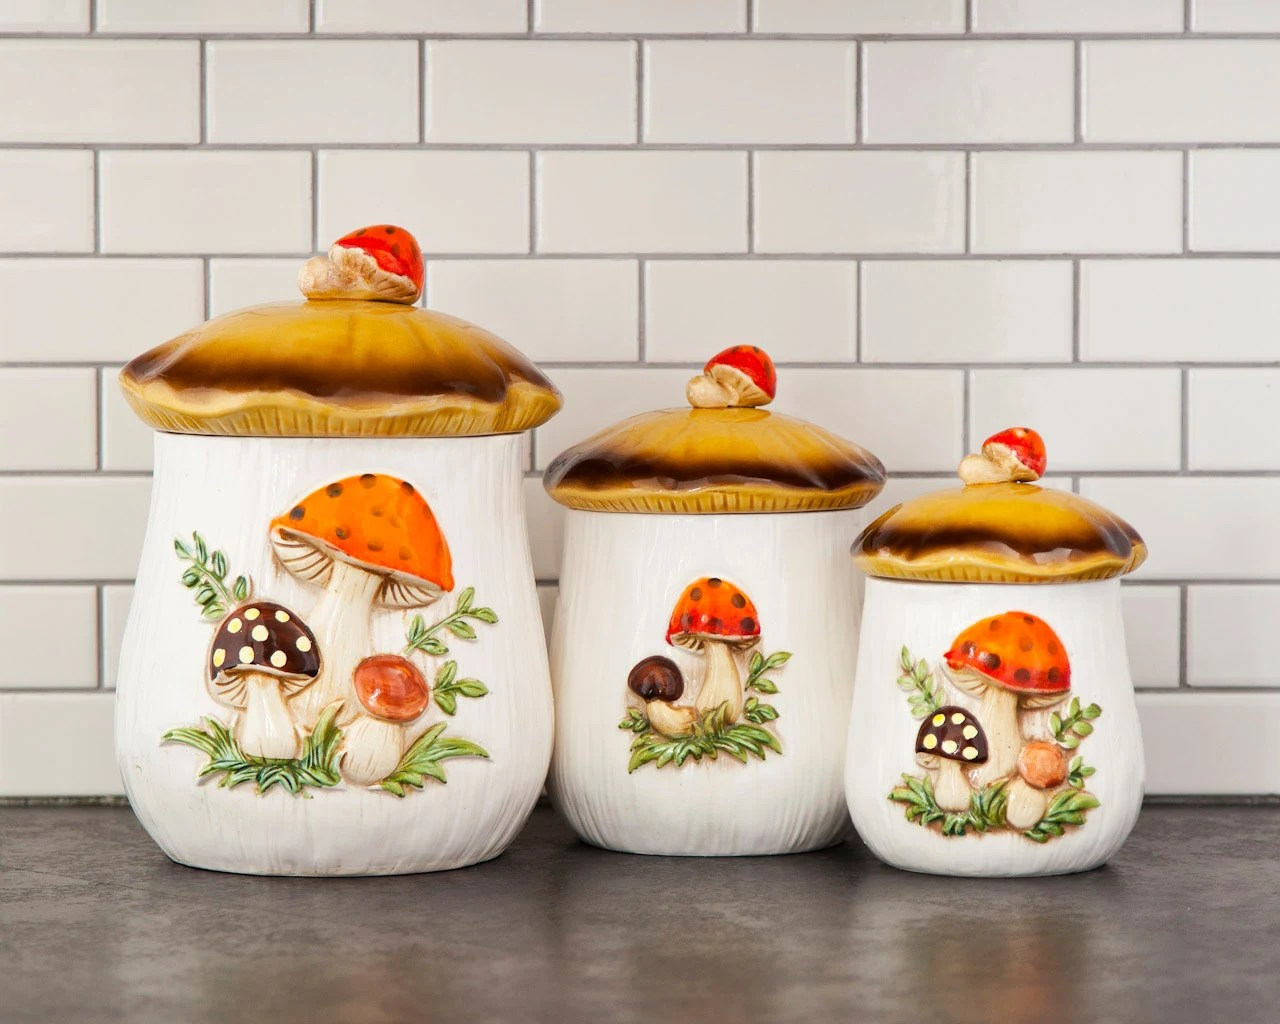 Ceramic Cookie Jar Sets Mushroom Canister Set Ceramic Cookie Jar 1970s Retro Kitchen